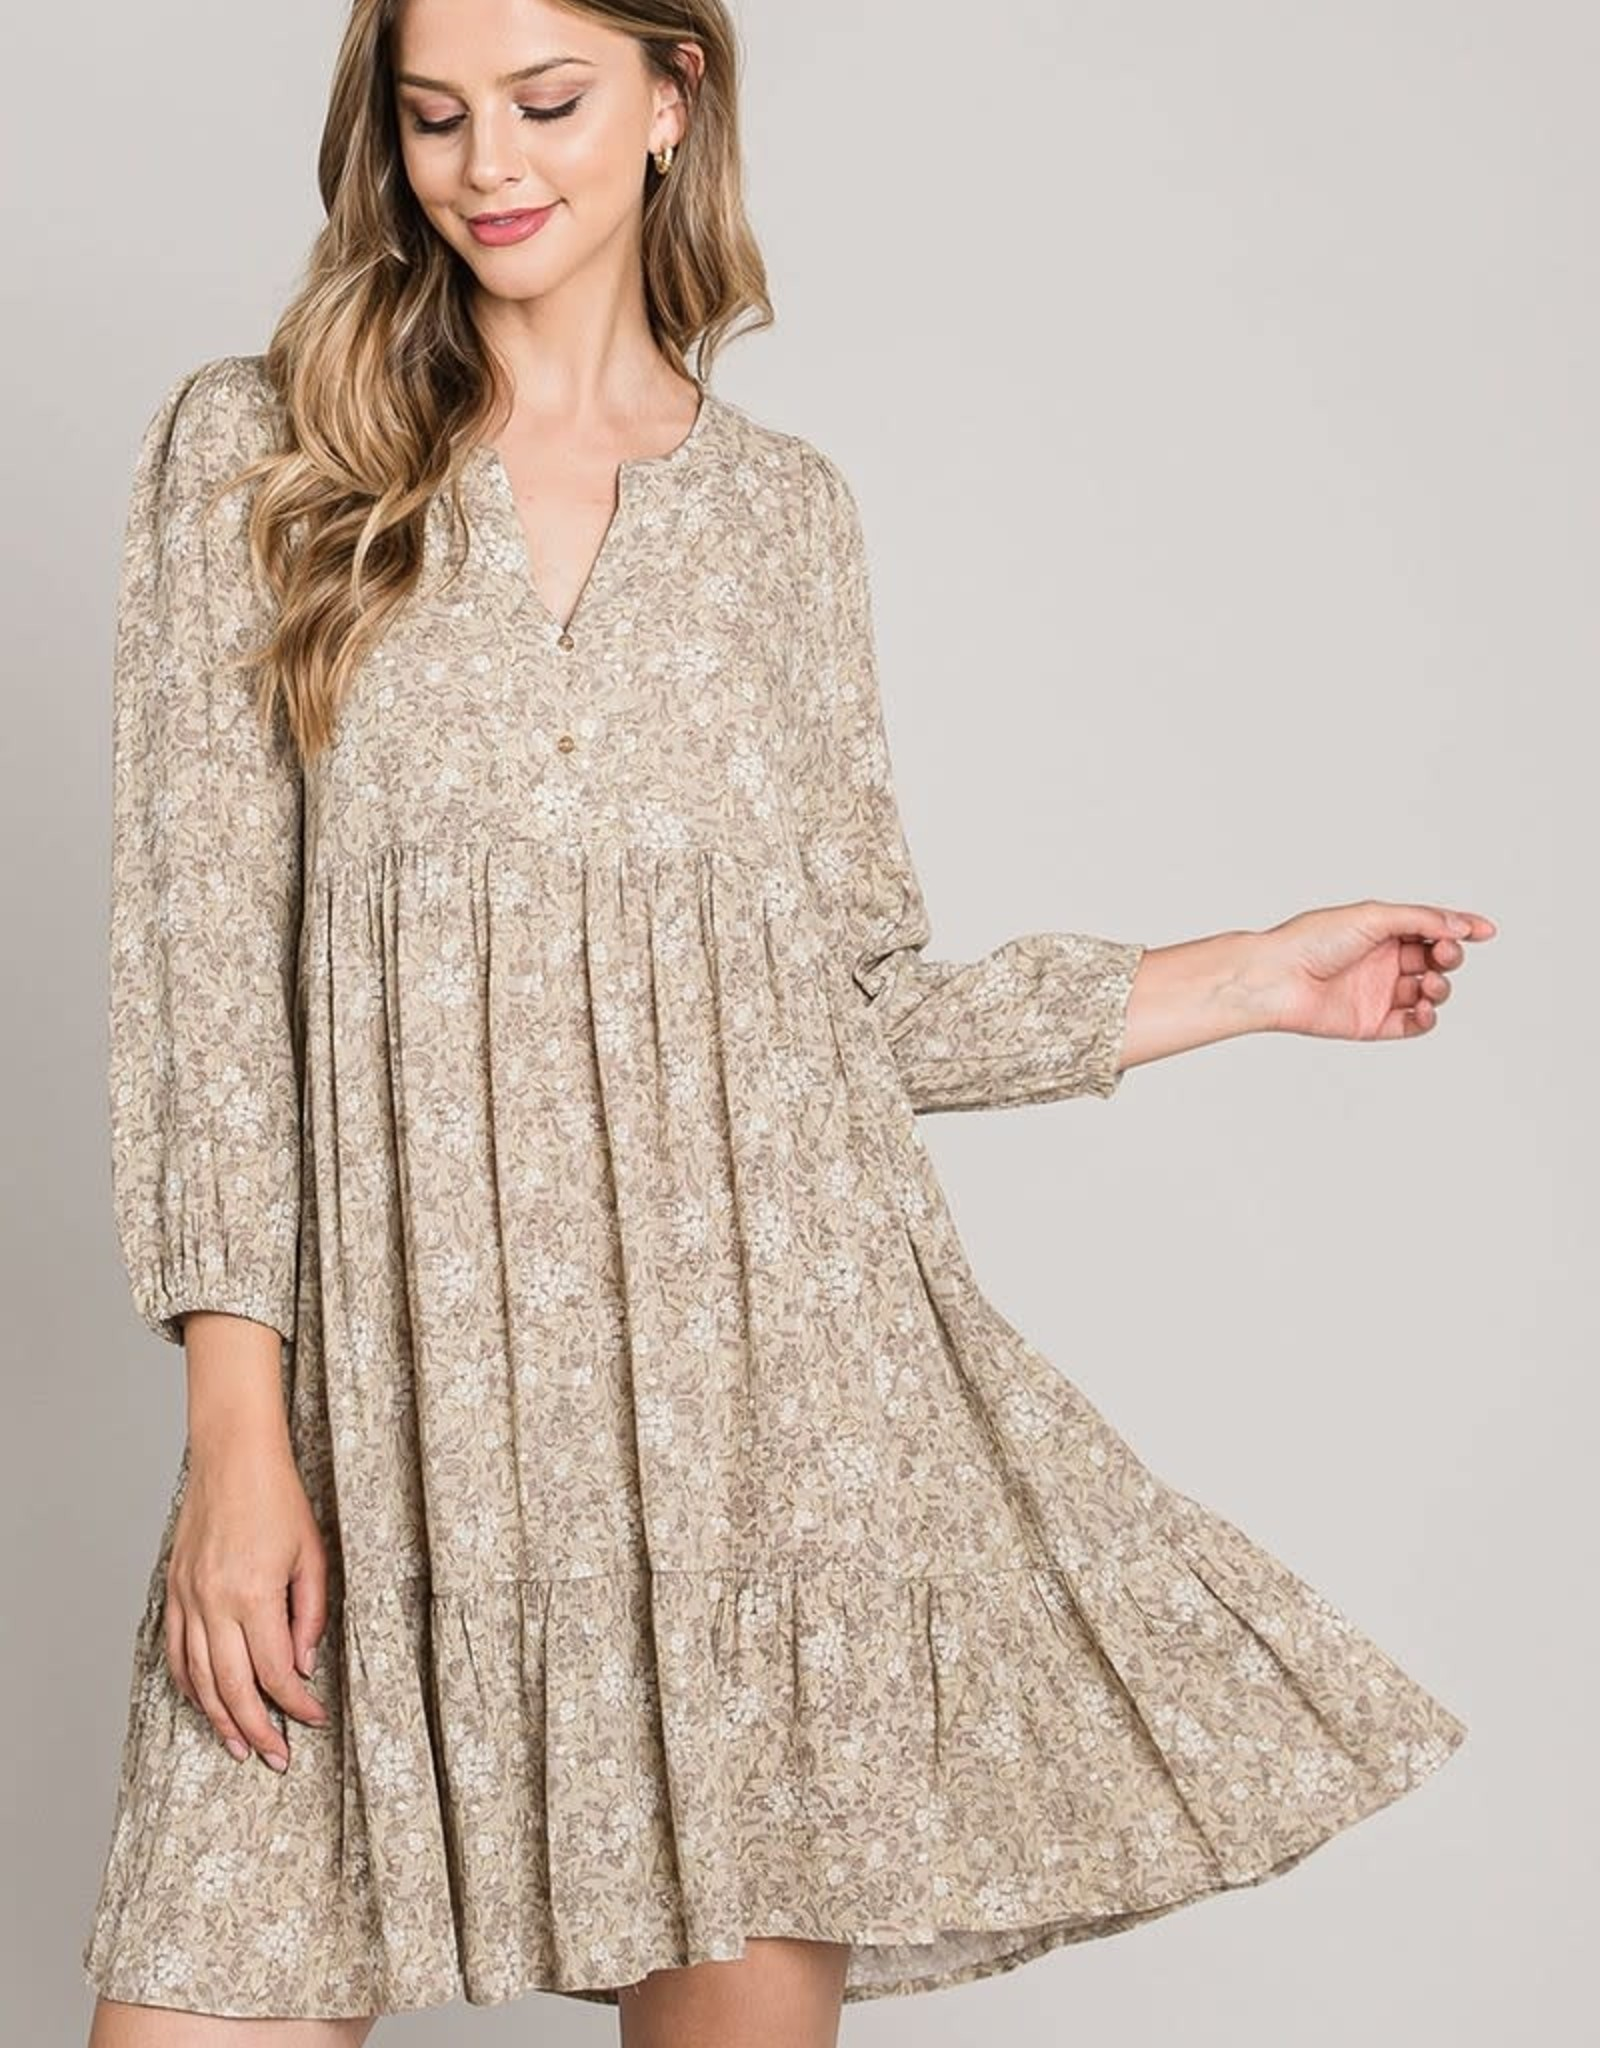 Miss Bliss LS Flowy Floral Print Dress- Taupe